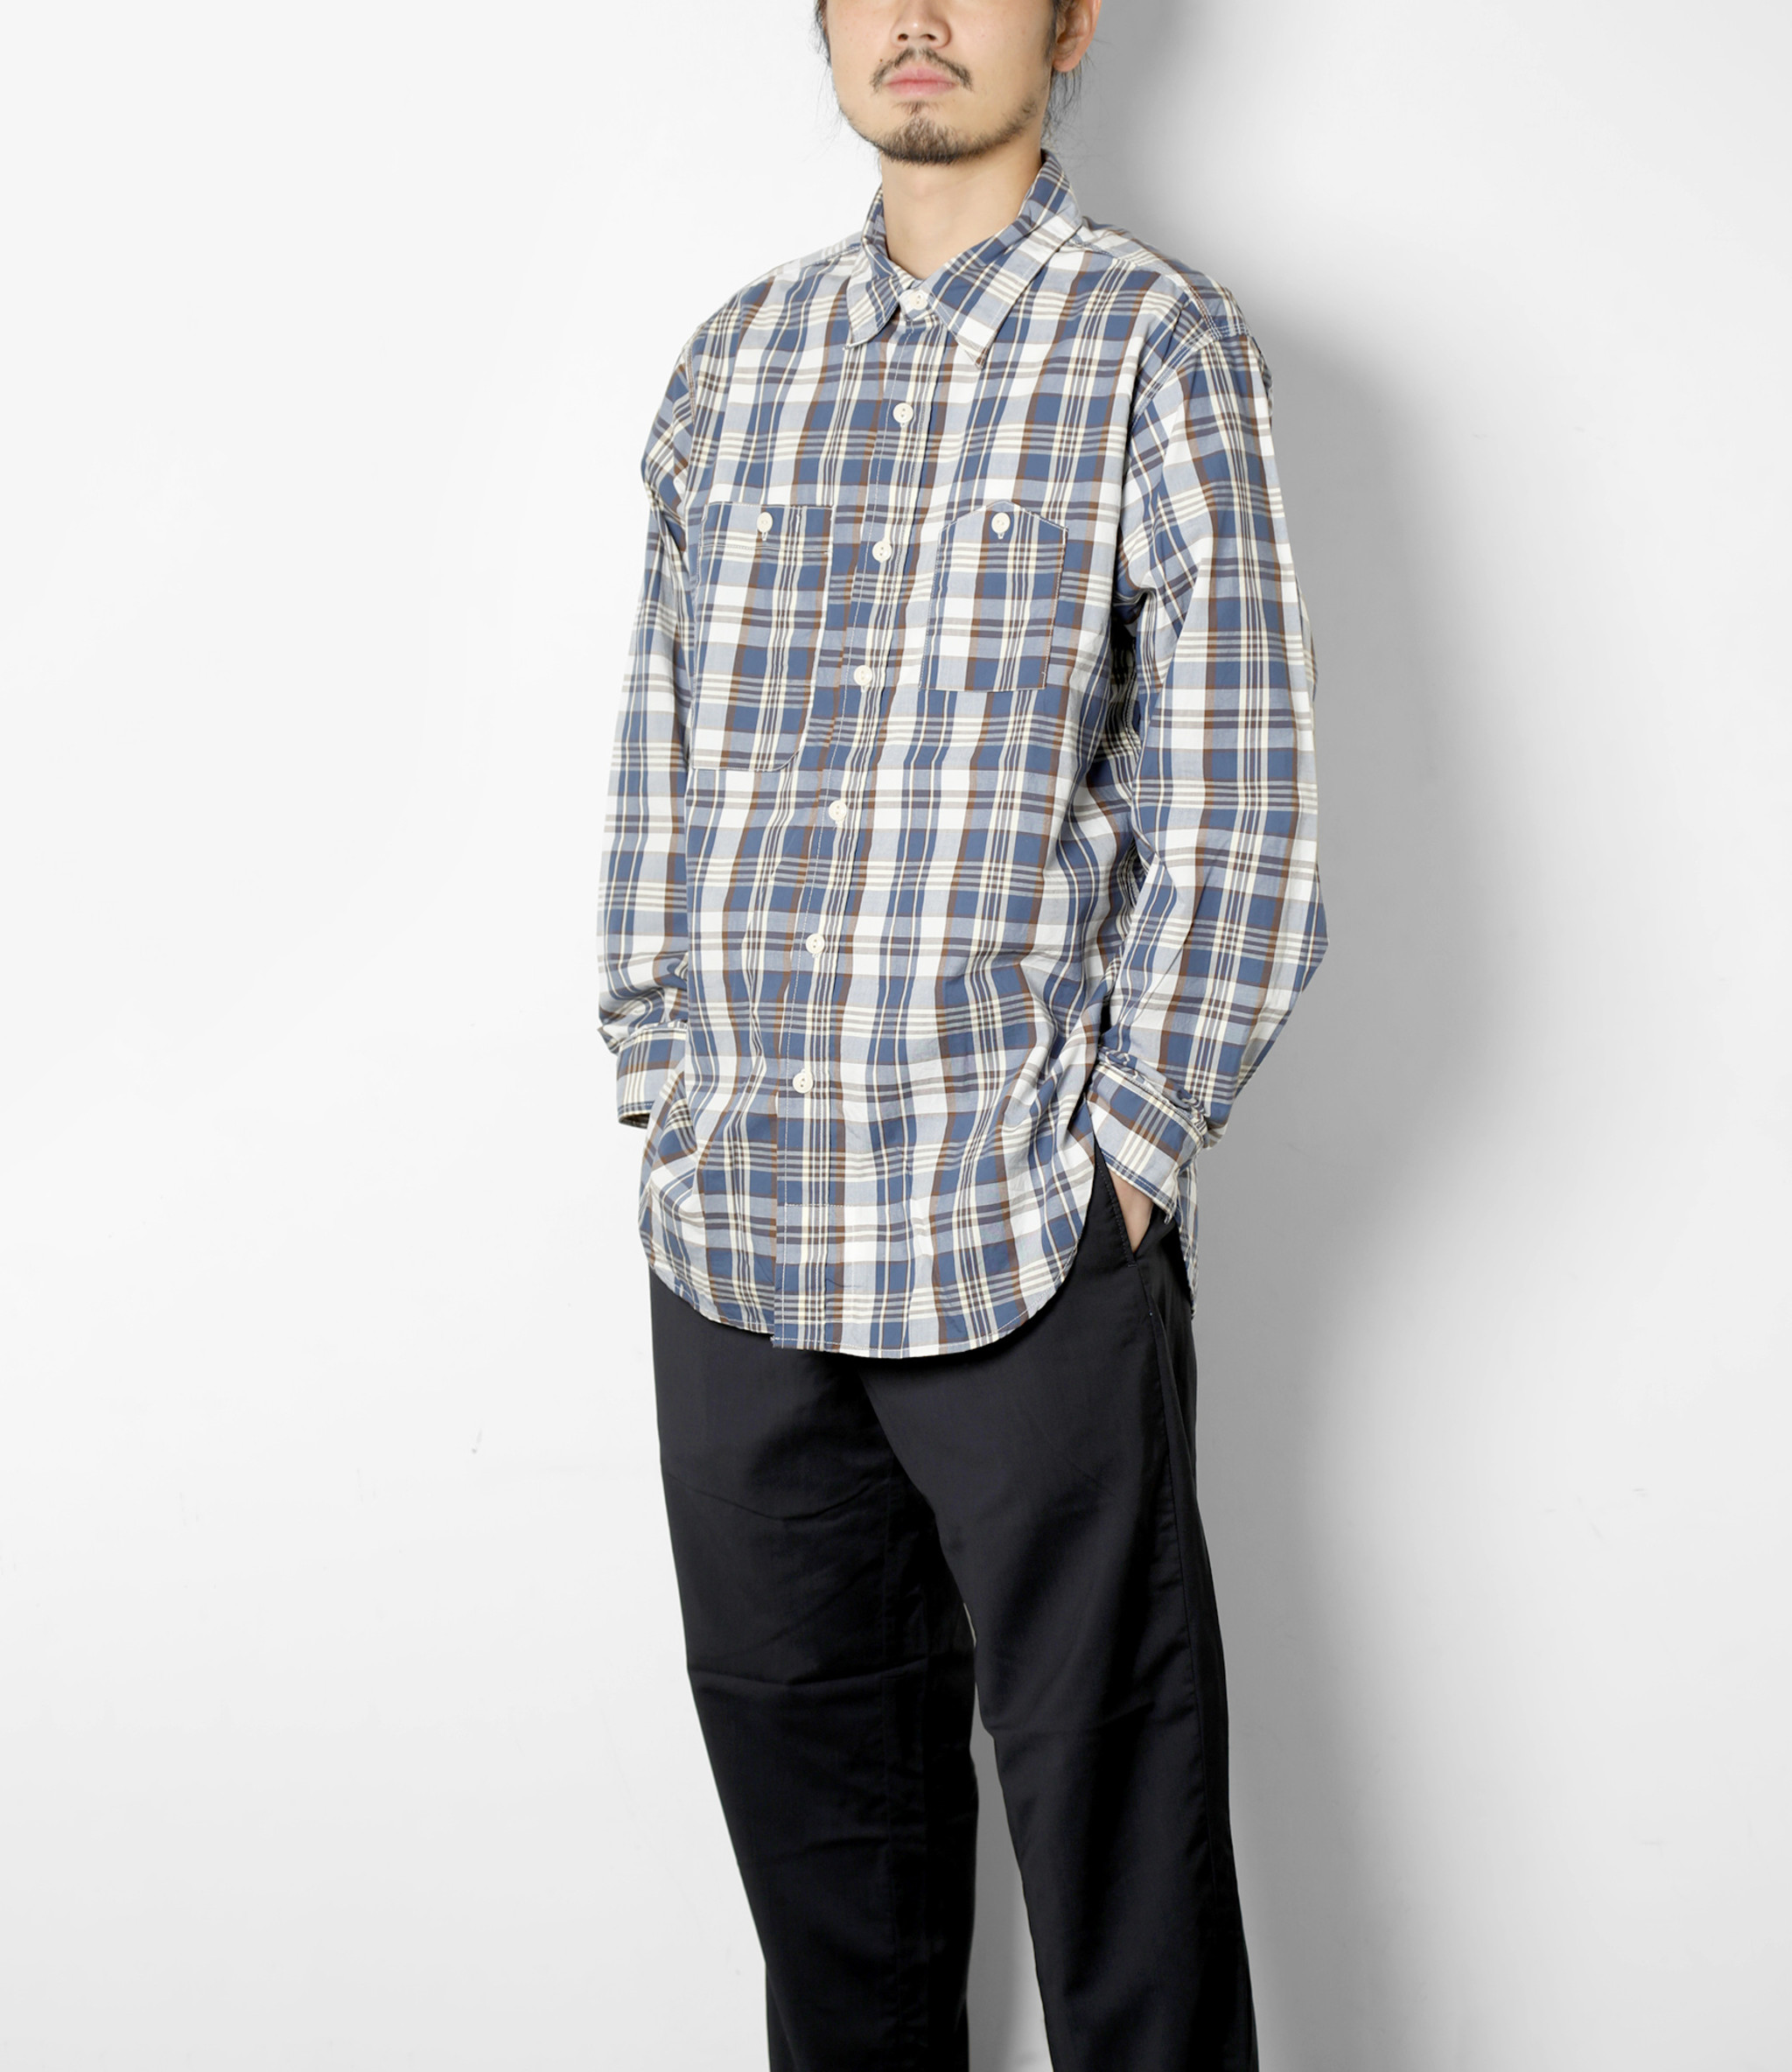 Engineered Garments Work Shirt  -  Navy/Brown Plaid Cotton Broadcloth